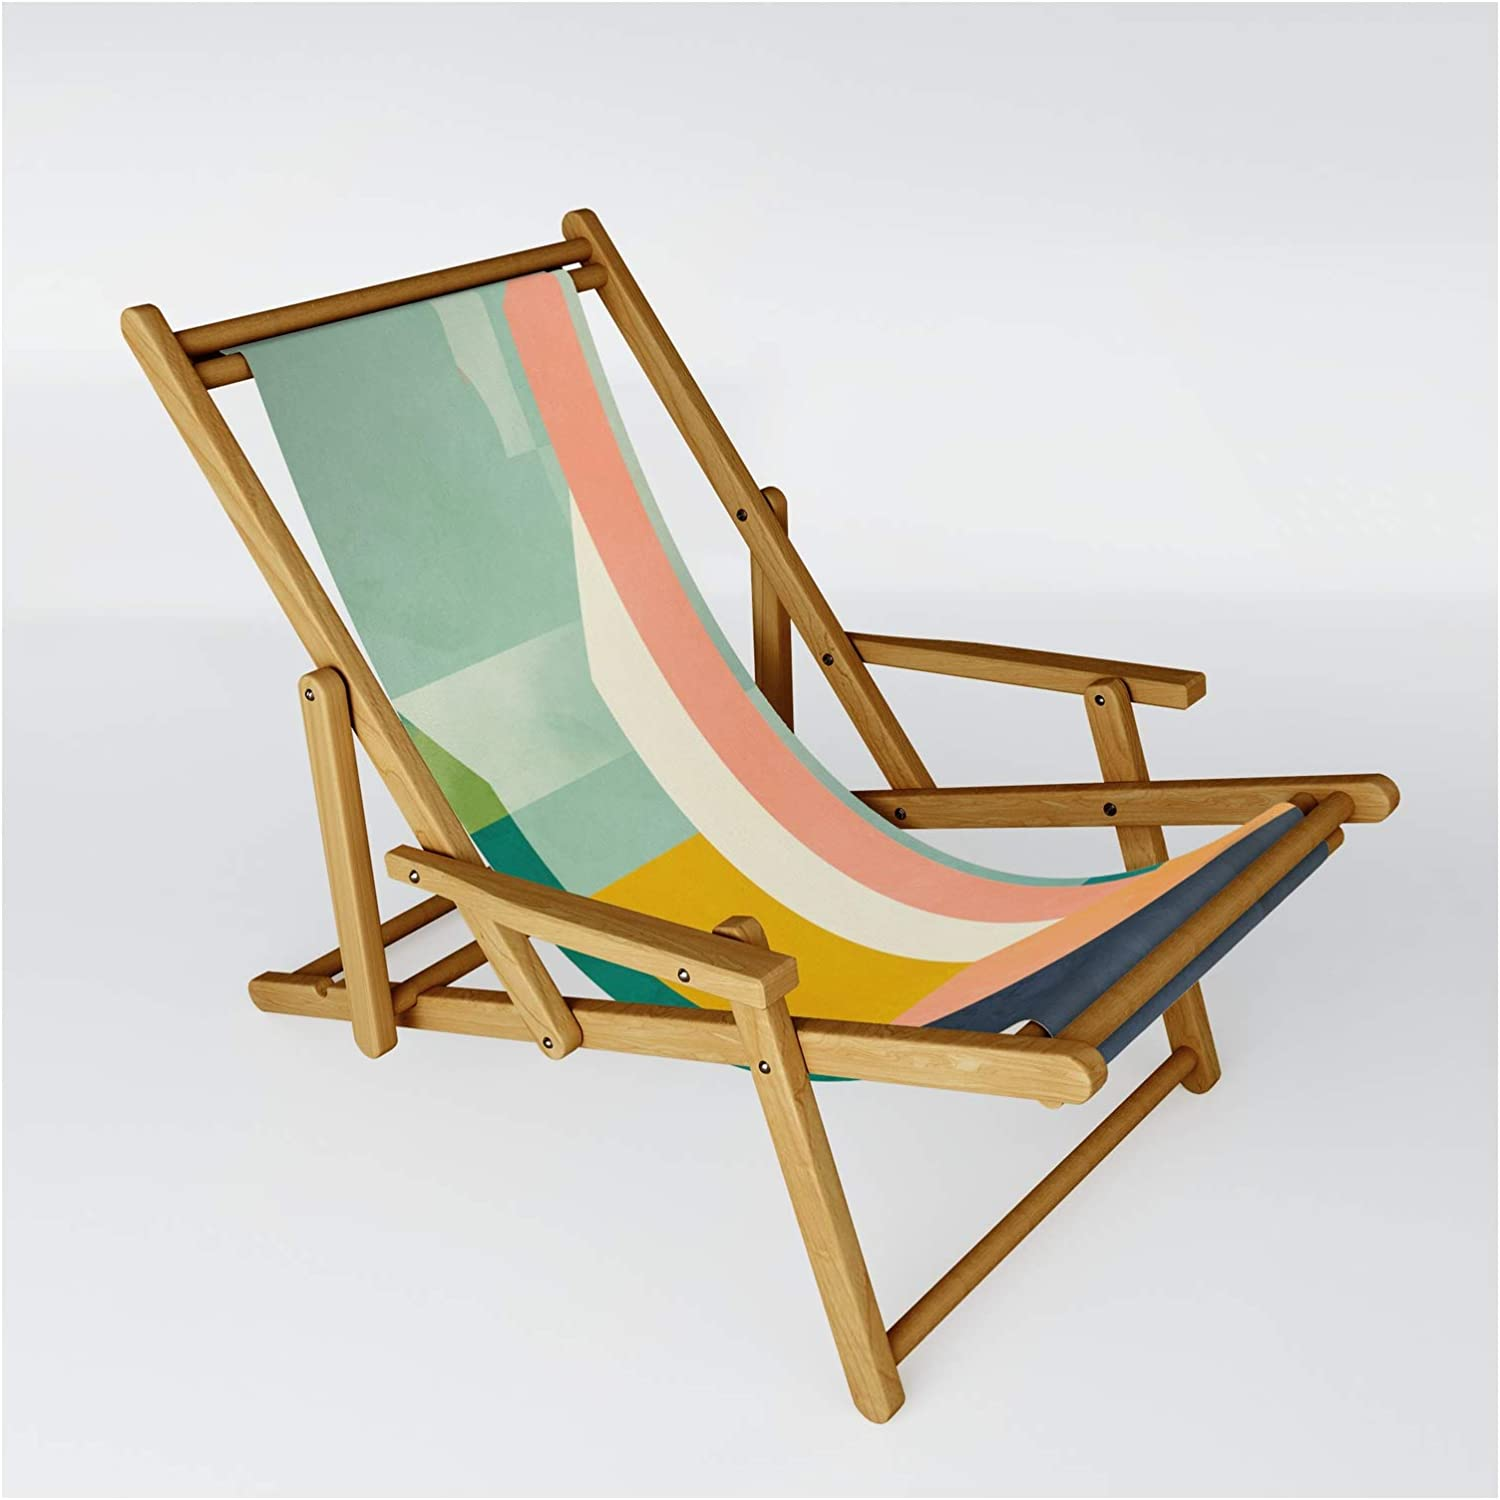 Society6 Passing by Ana Rut BRE Fine Chair on 1 year warranty Sling - Art One Great interest